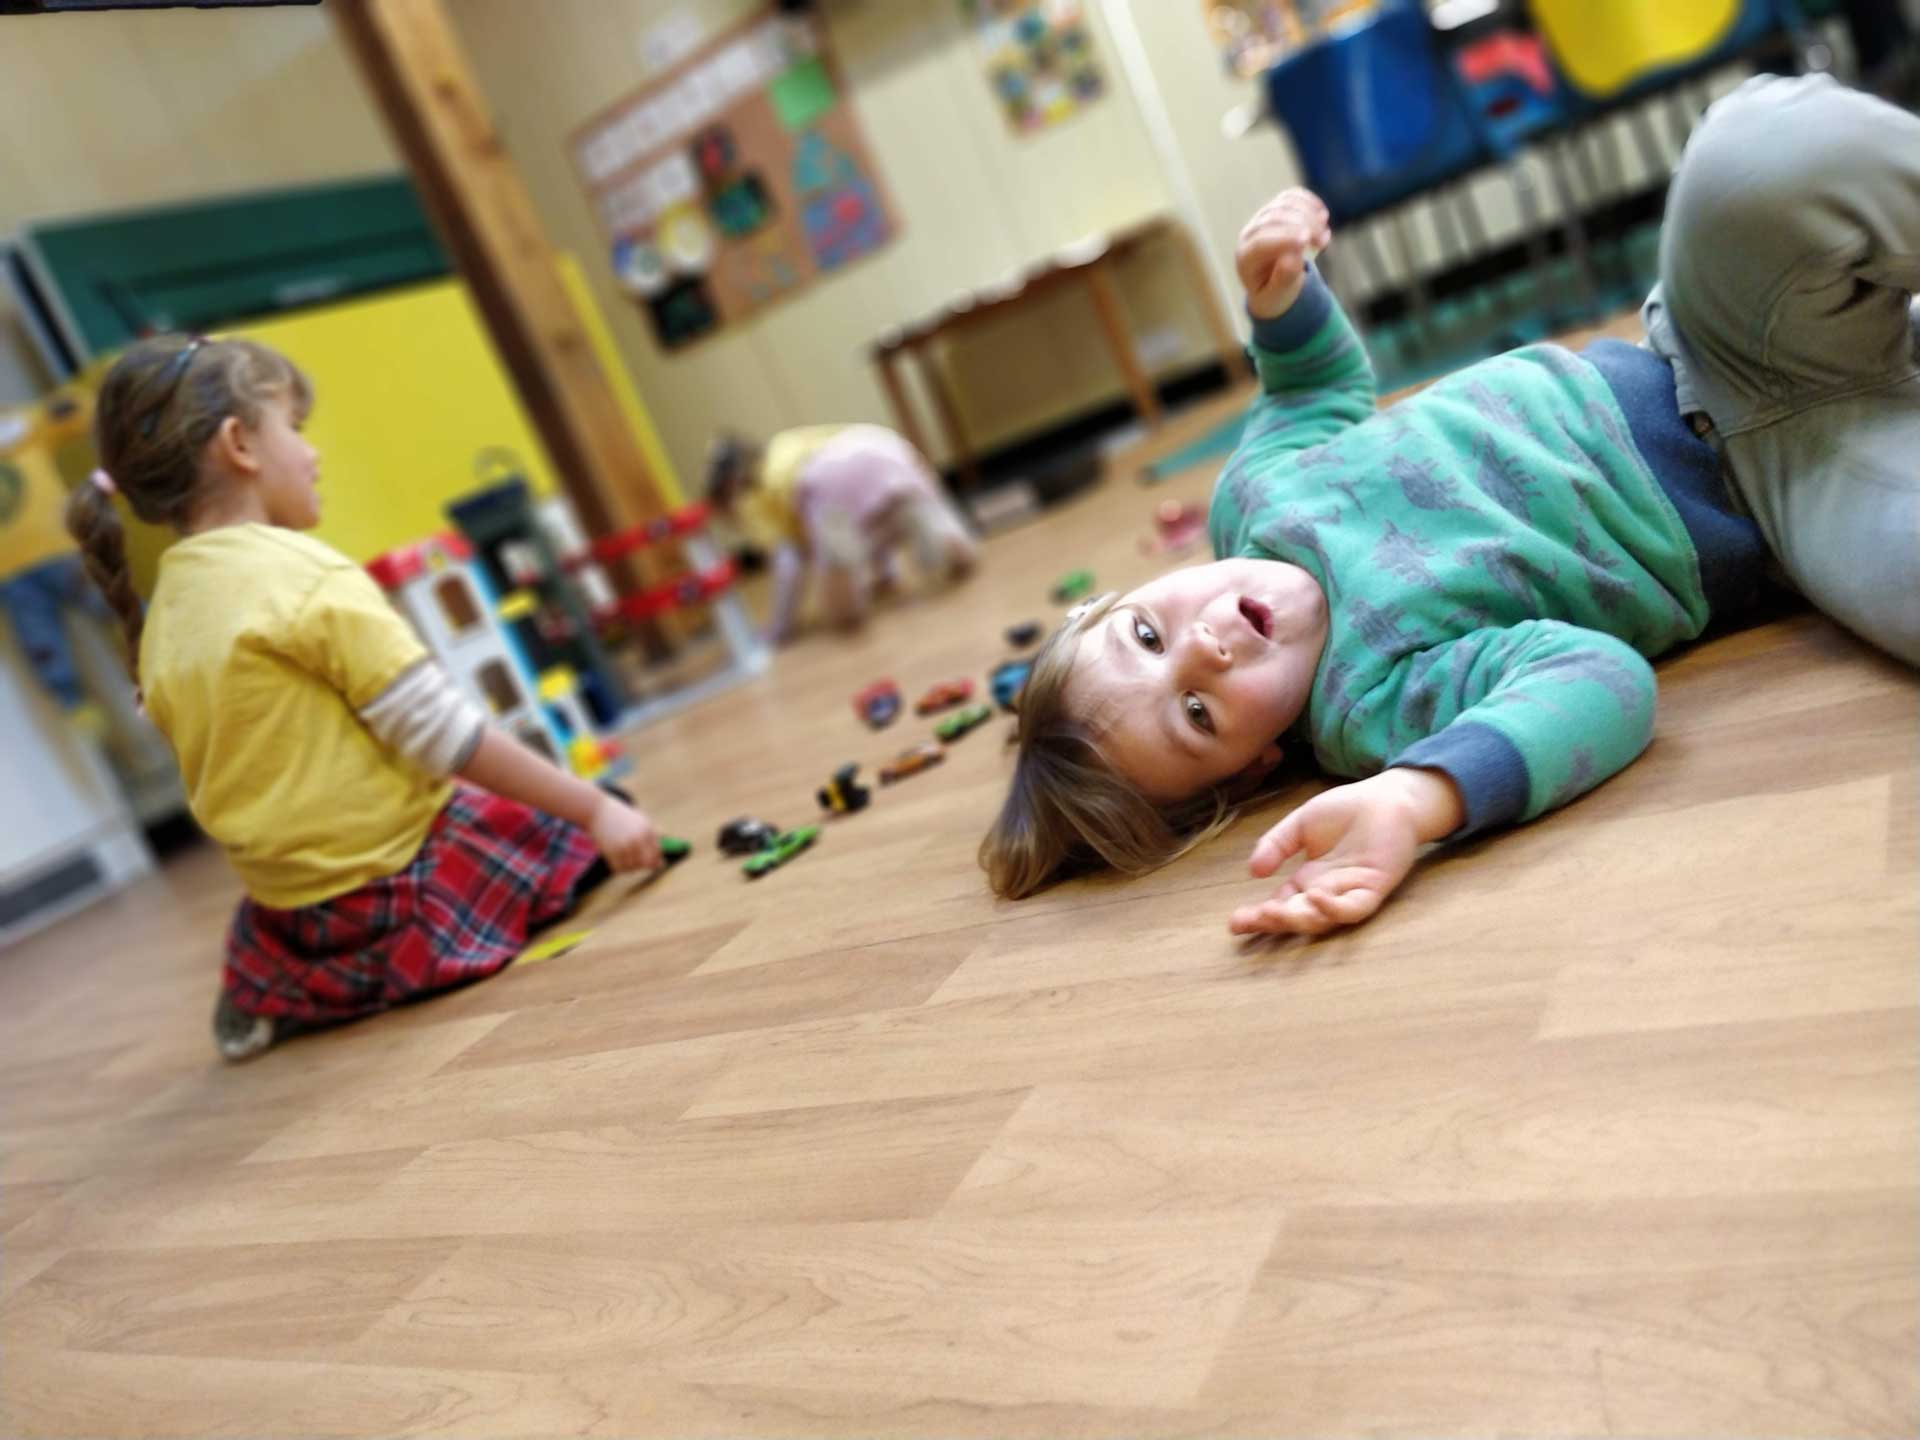 A boy playing on the floor whilst girls play behind him at Rottingdean Whiteway Nursery